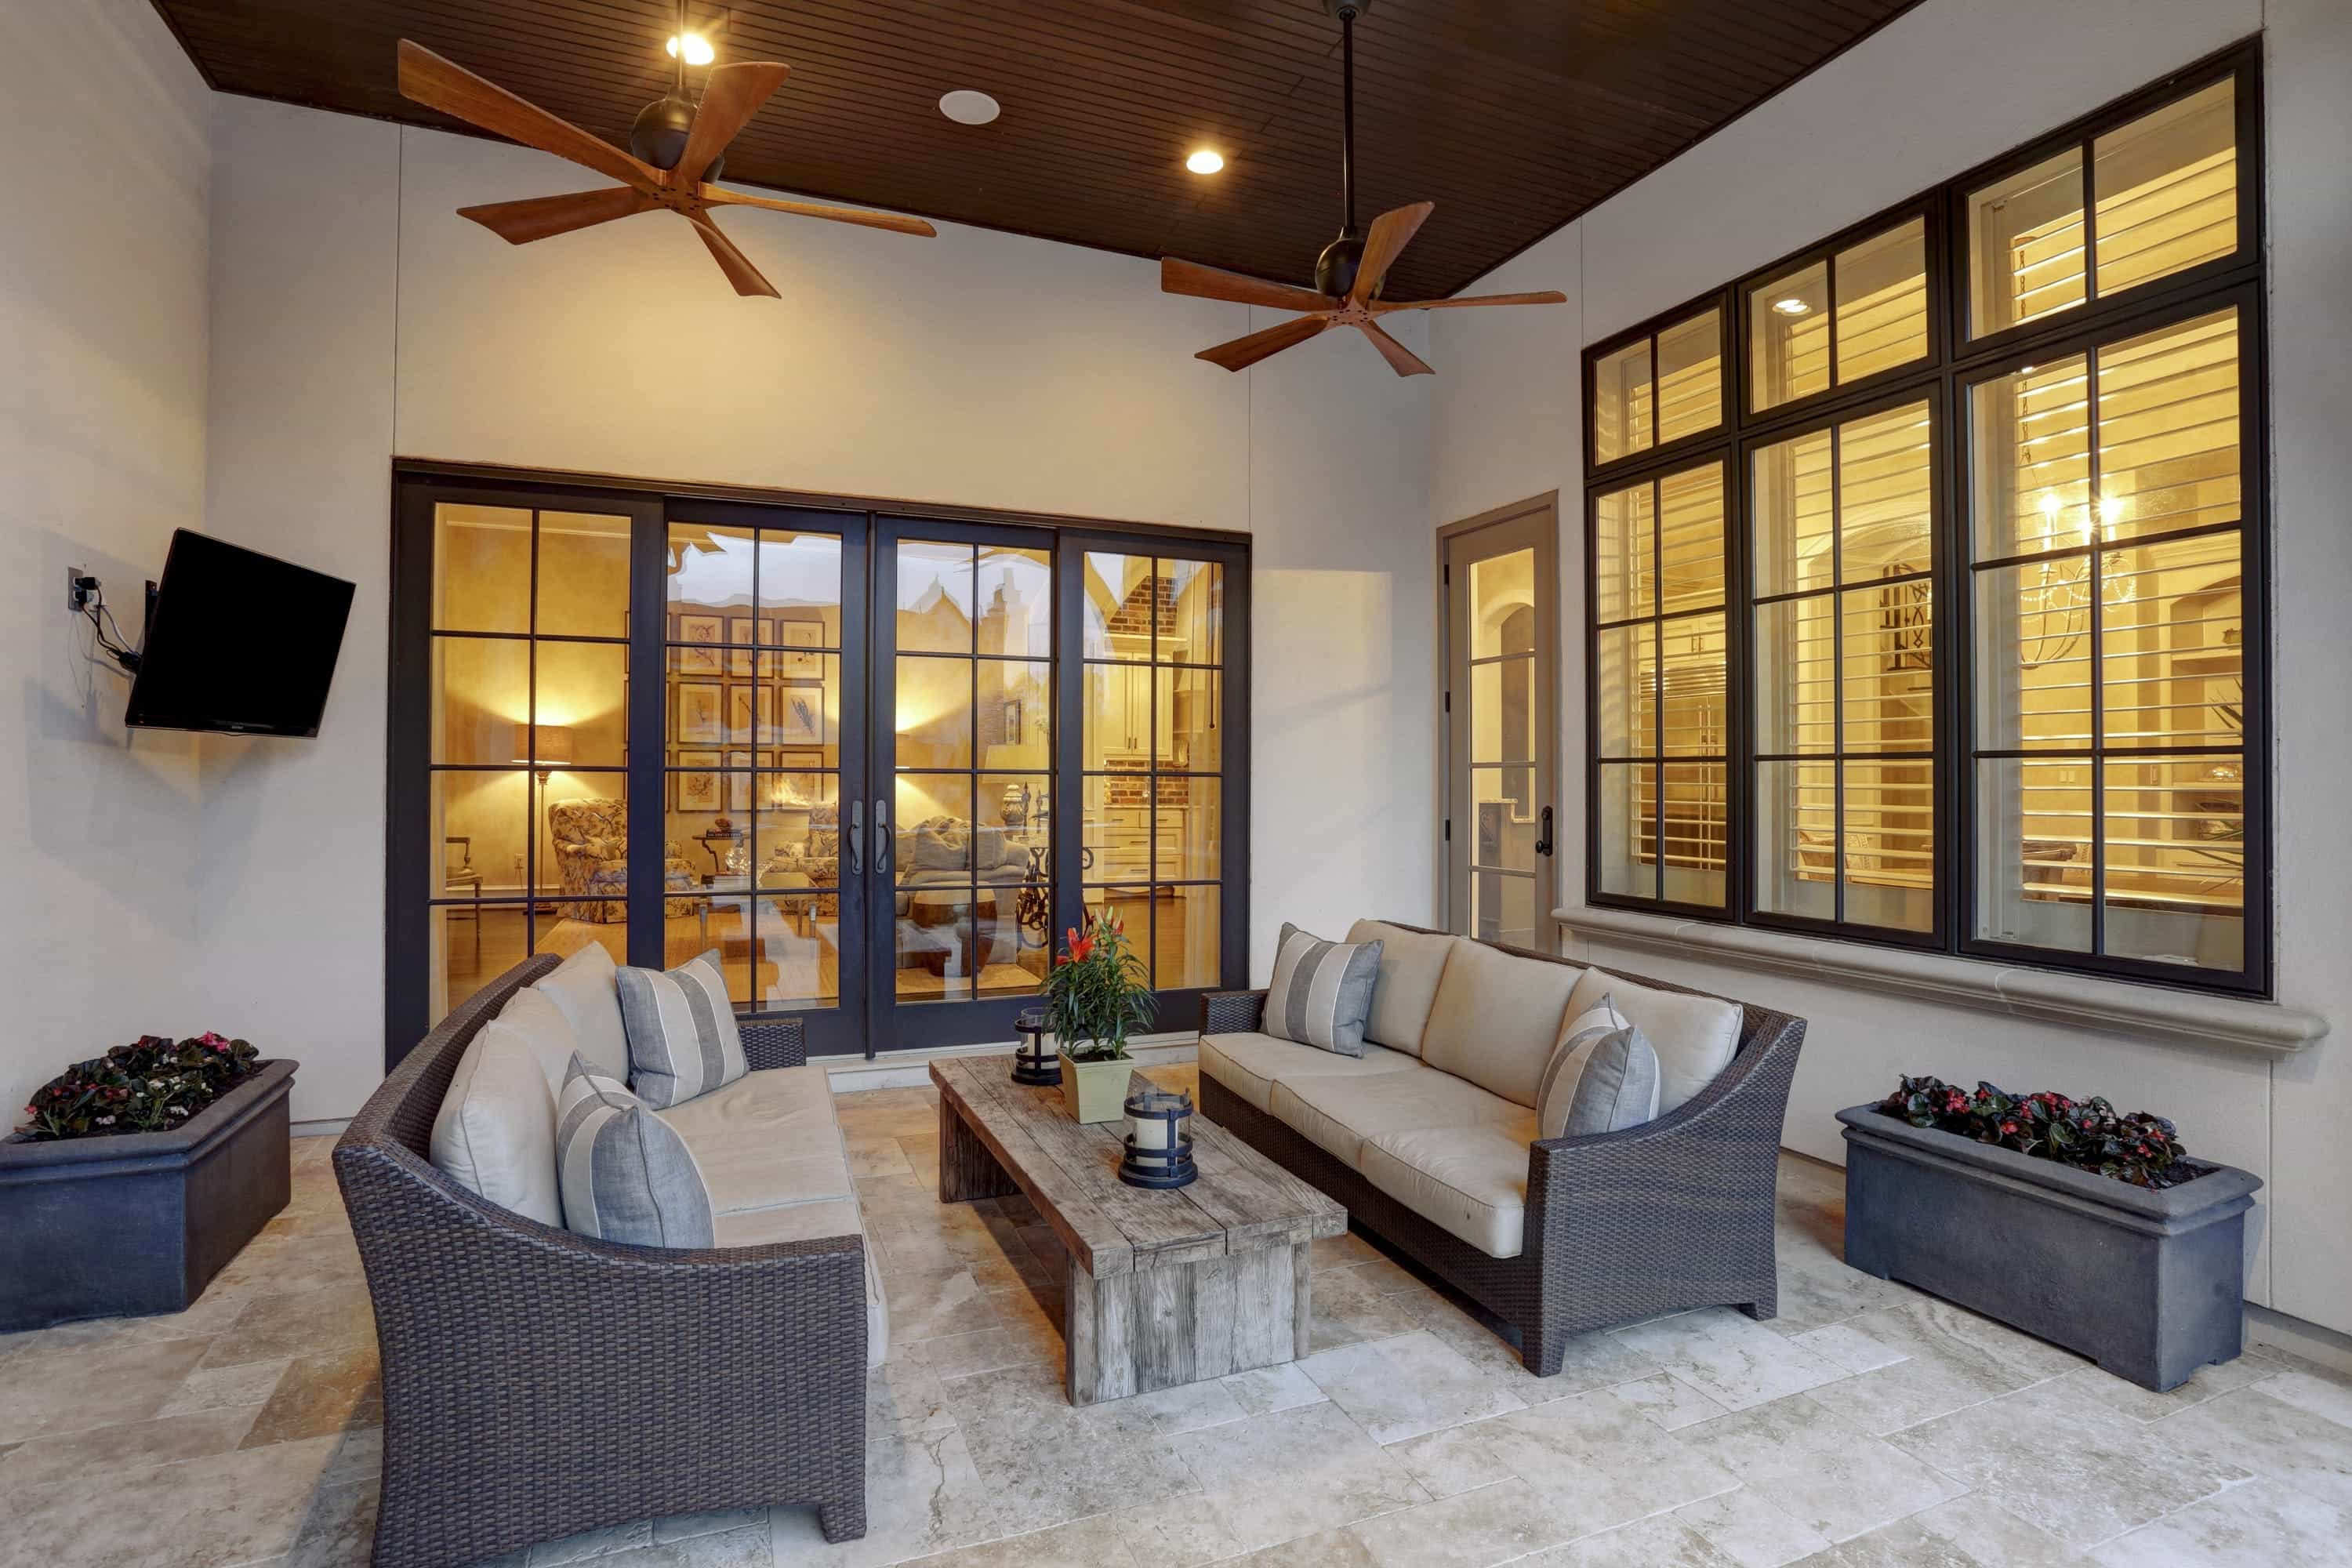 Outdoor Sitting Area Sliding Glass Doors (Image 17 of 21)